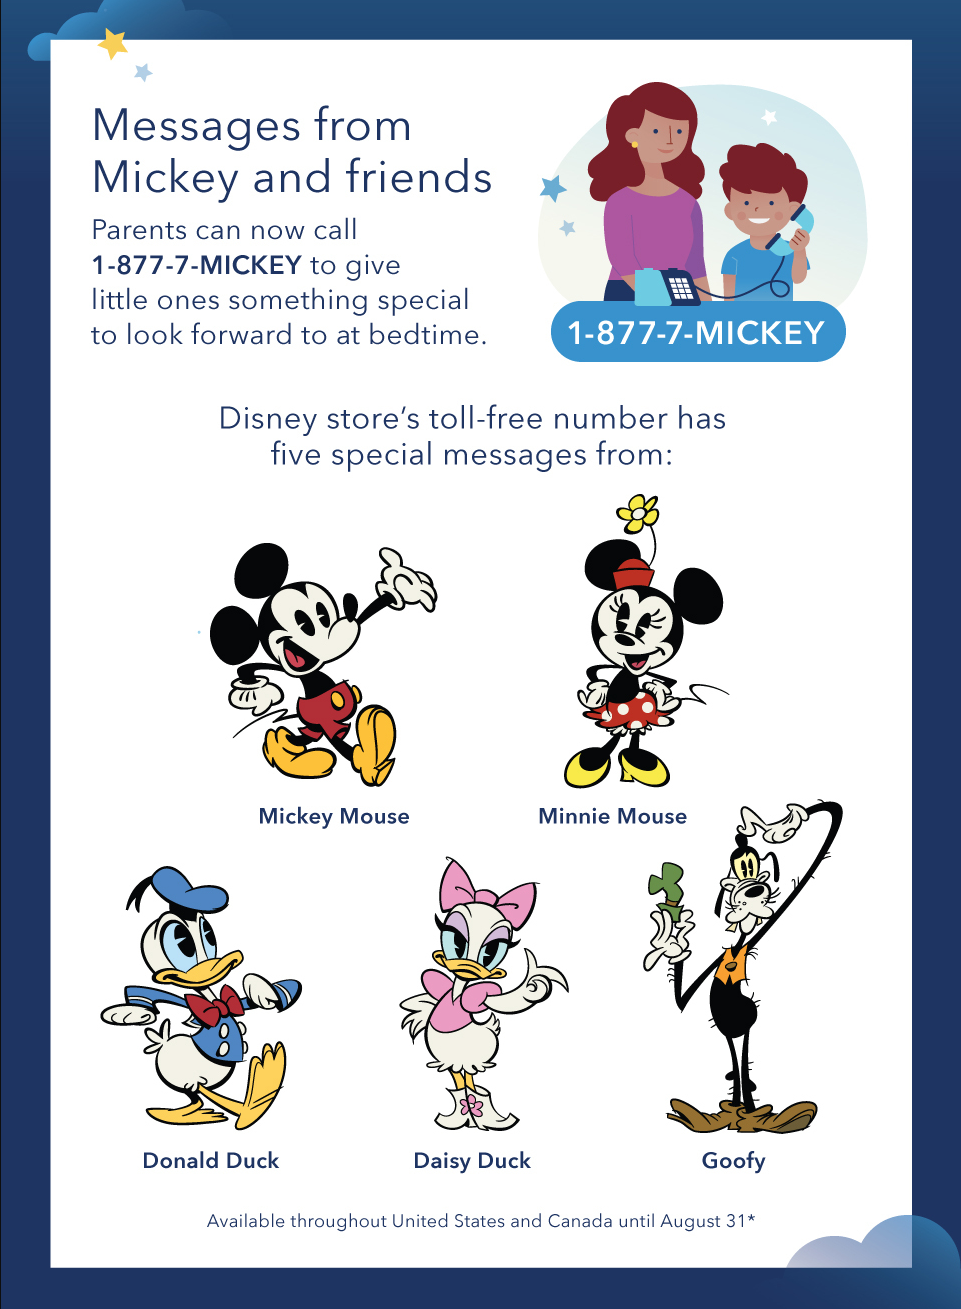 FREE Bedtime Message from a Disney Character